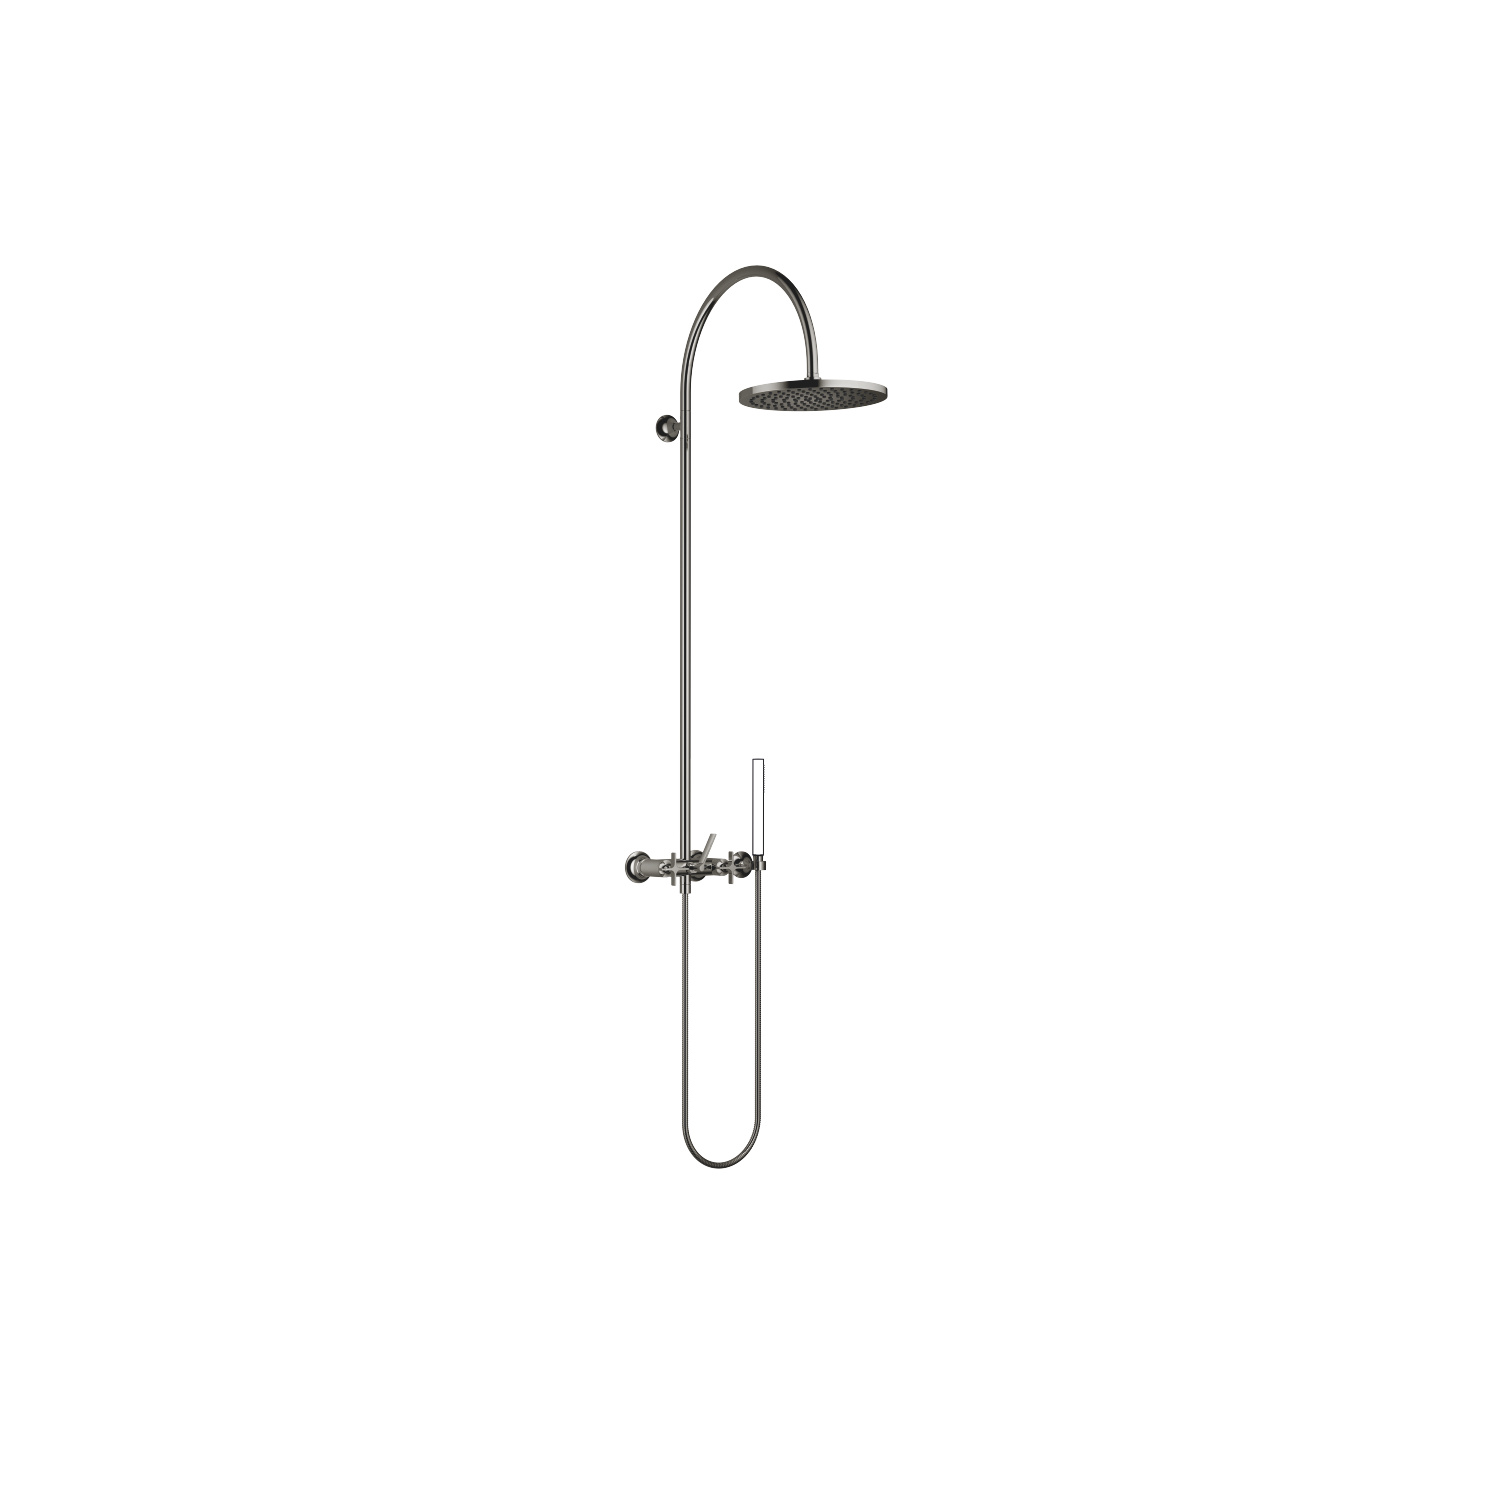 Exposed shower set with shower mixer without hand shower - platinum